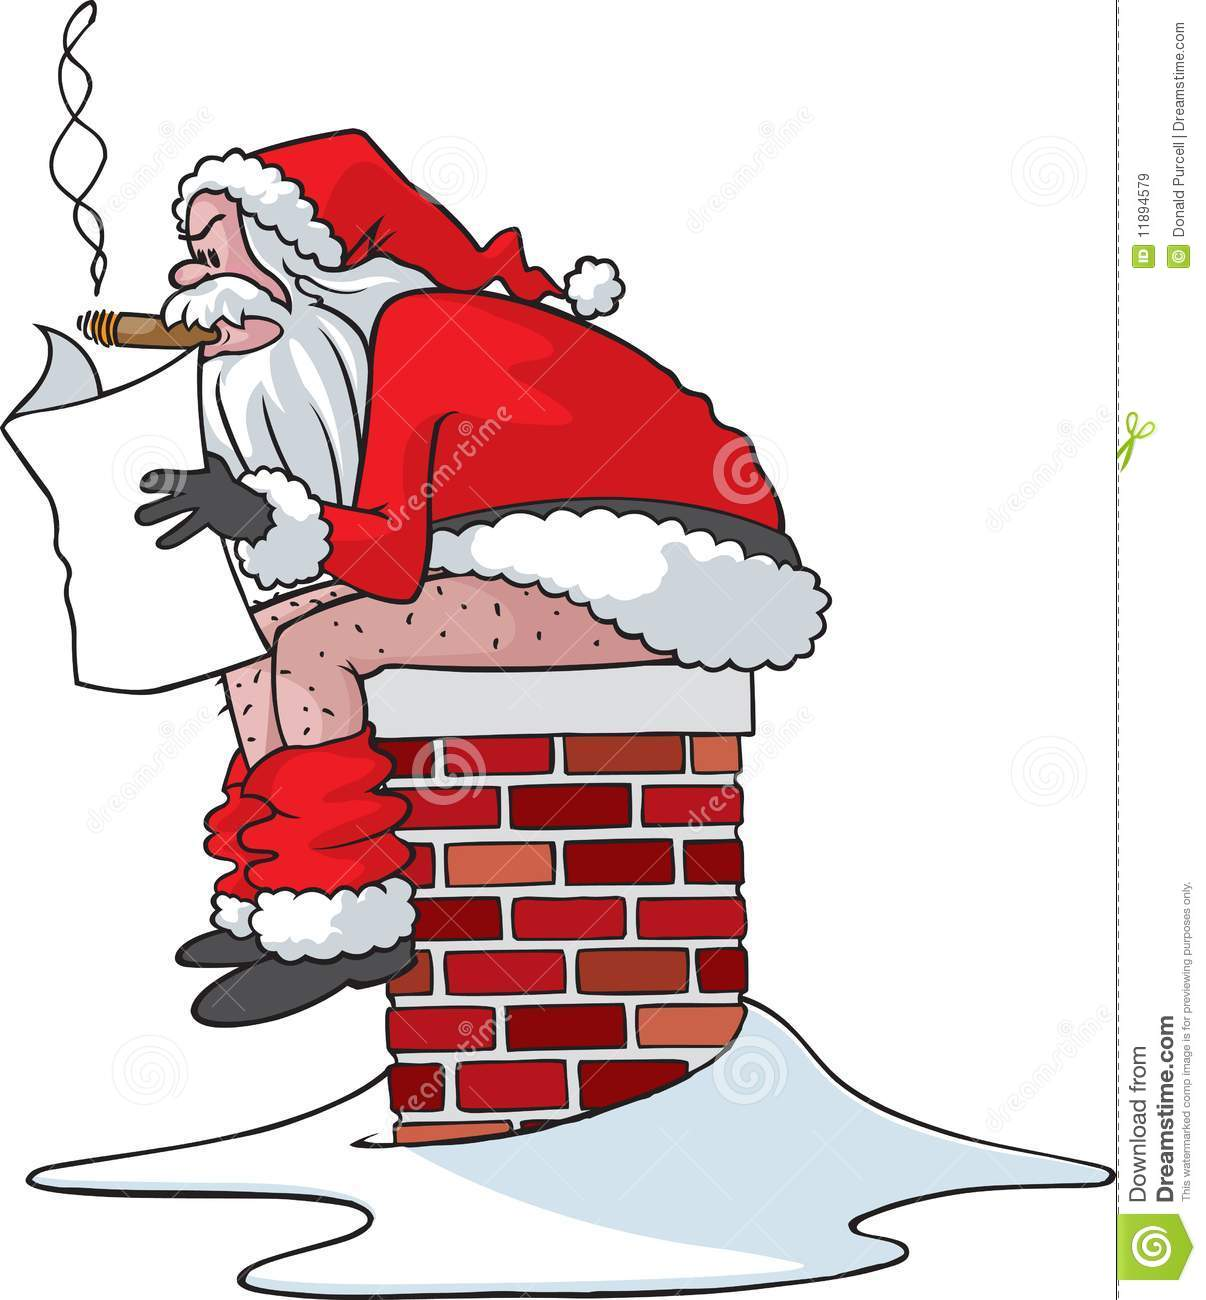 naughty xmas clip art - photo #46